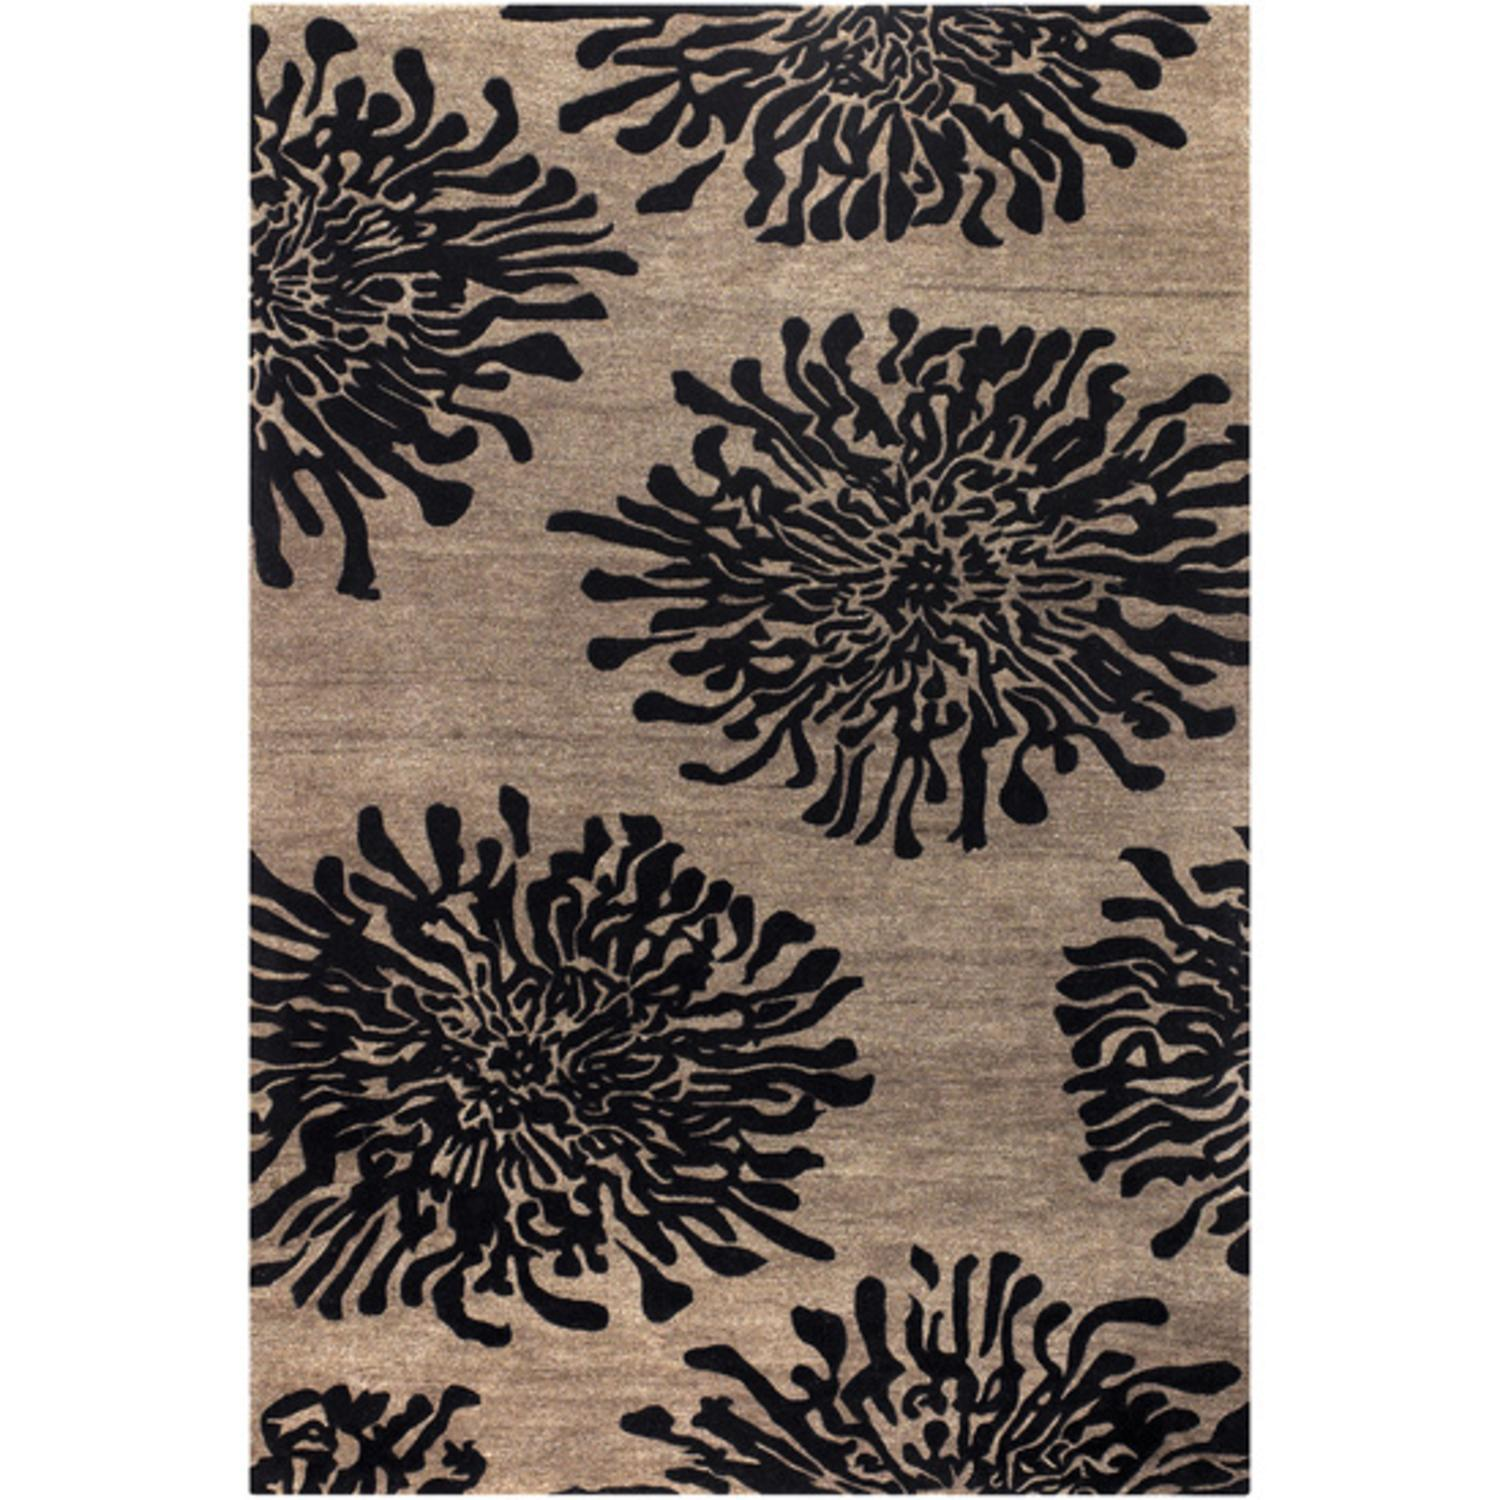 2' x 3' Bombay Espresso and Chocolate Chrysanthemum Flower Medallion Throw Rug